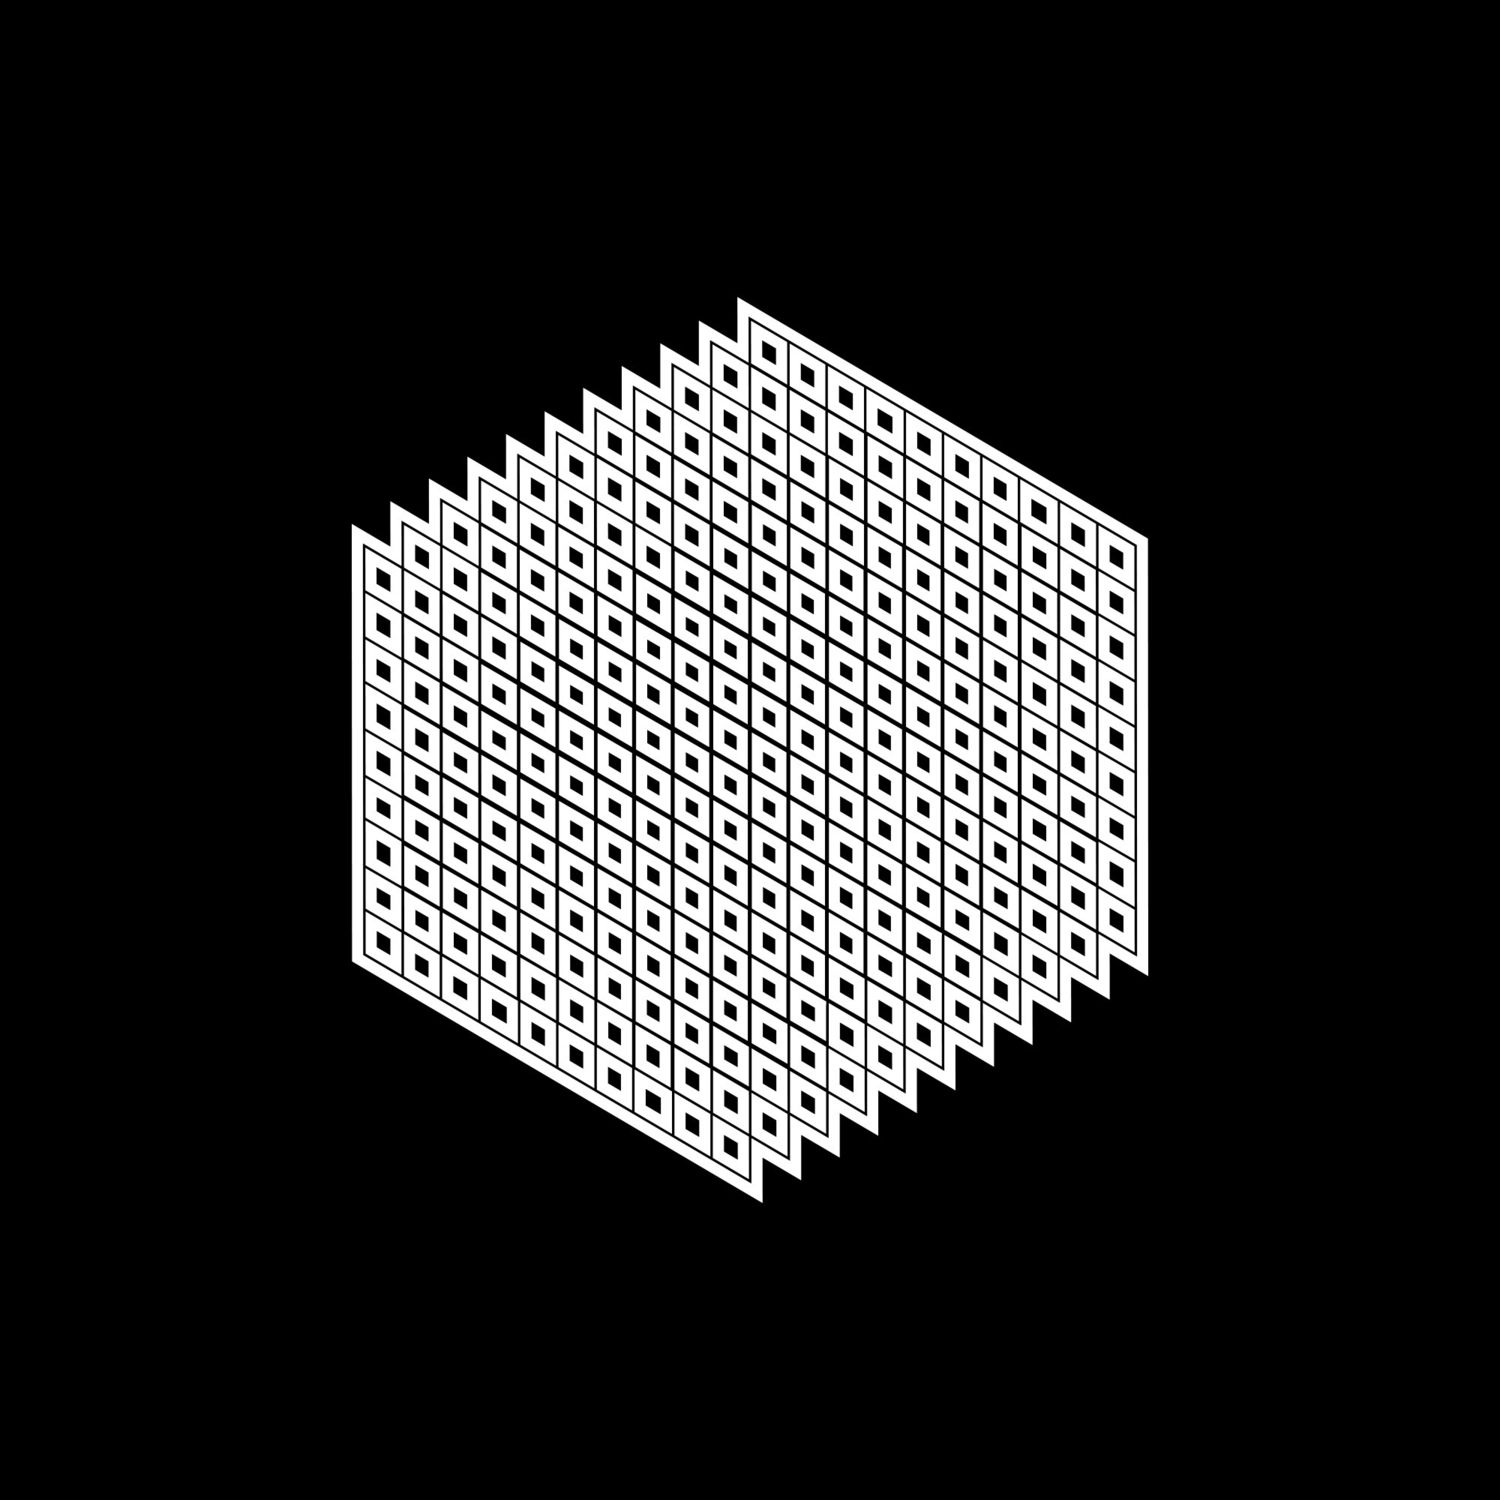 By modularlab on #Ello  #blackandwhite #bw #geometric #design